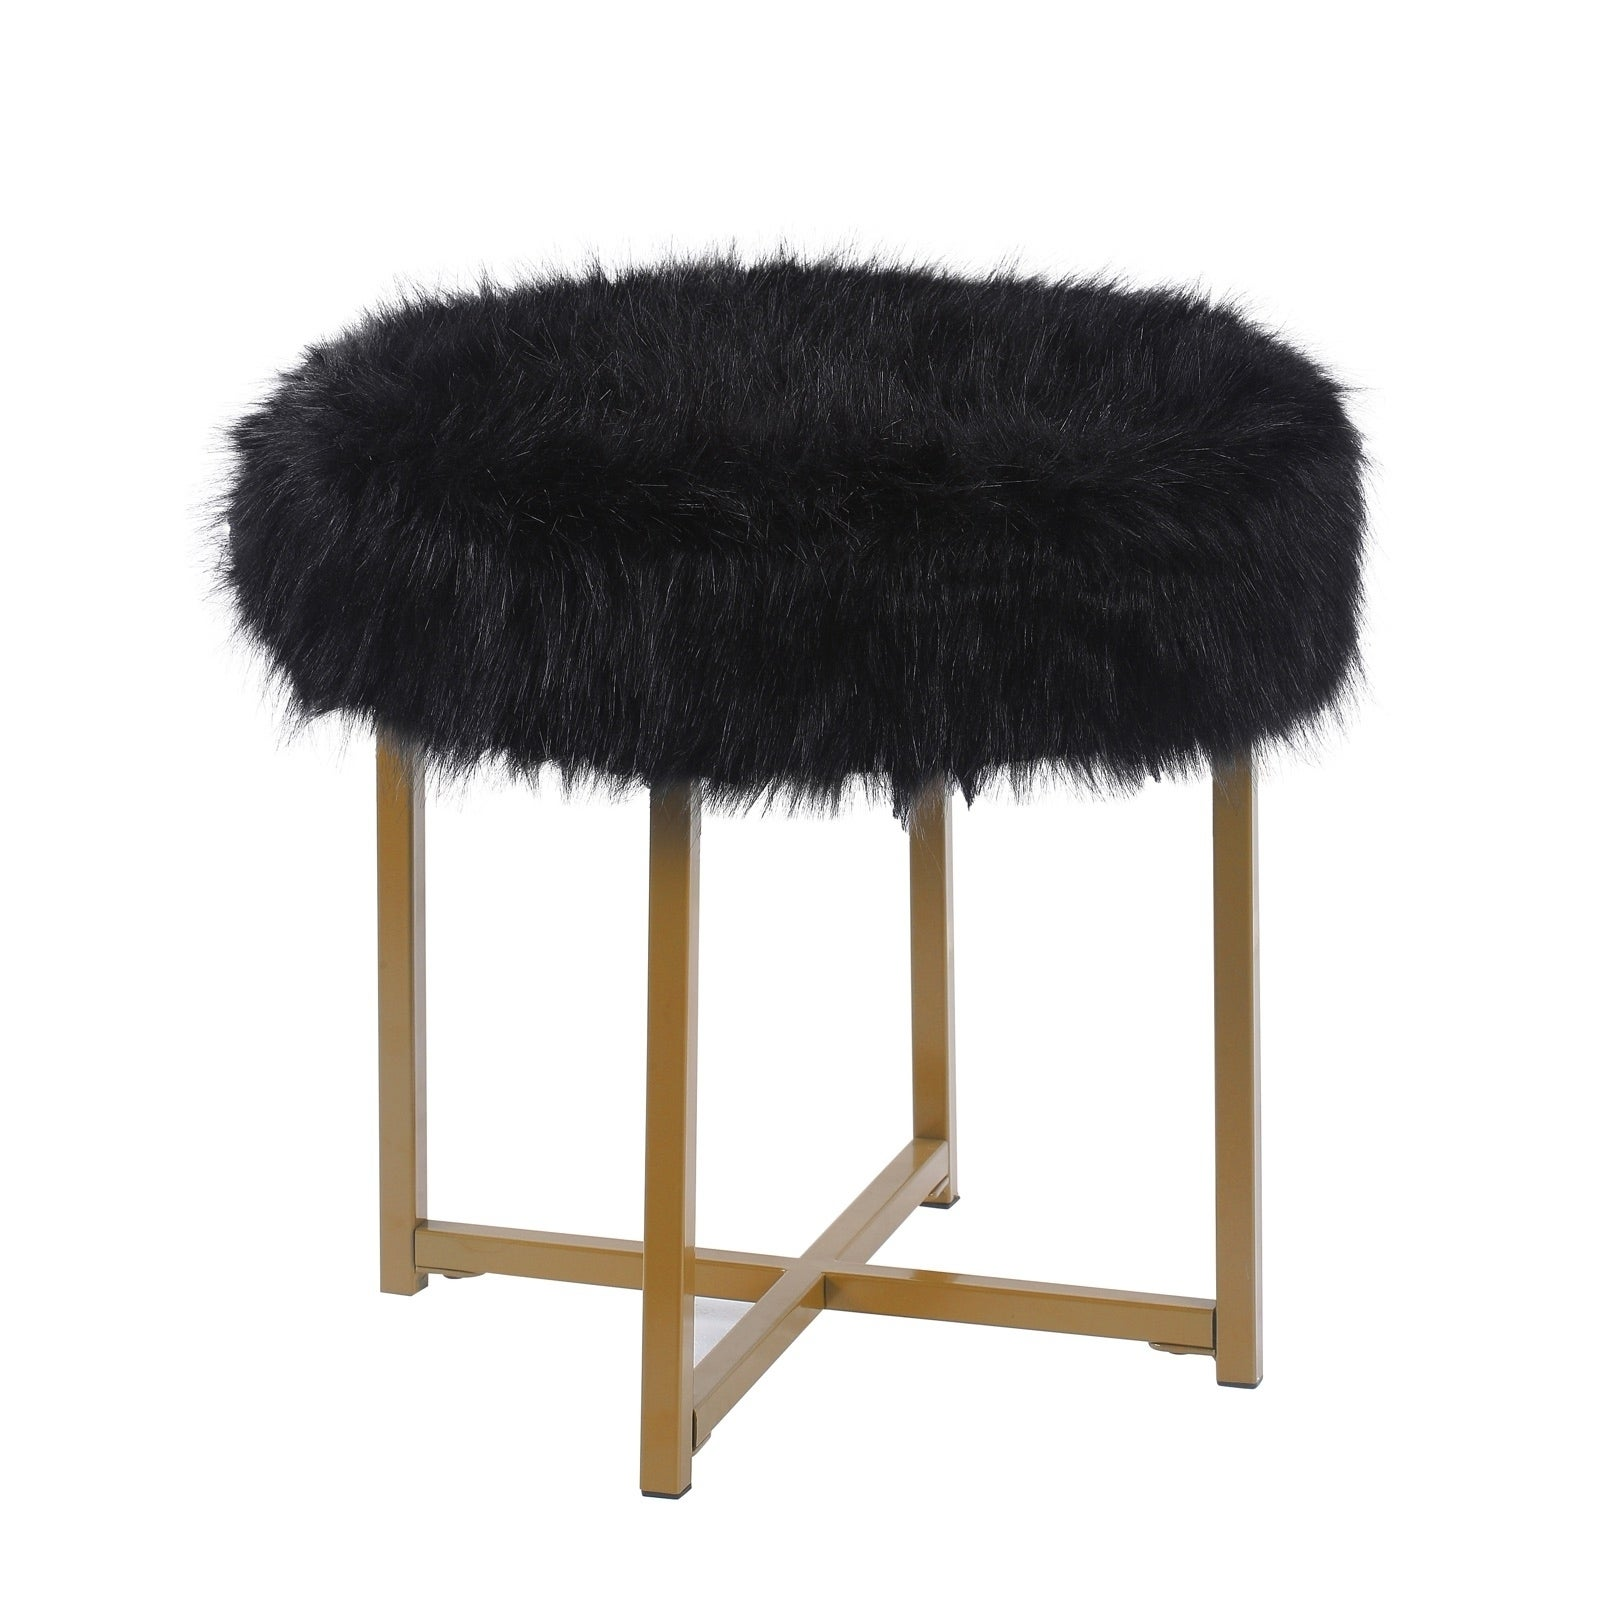 Surprising Round Faux Fur Upholstered Ottoman With X Shape Metal Base Bralicious Painted Fabric Chair Ideas Braliciousco